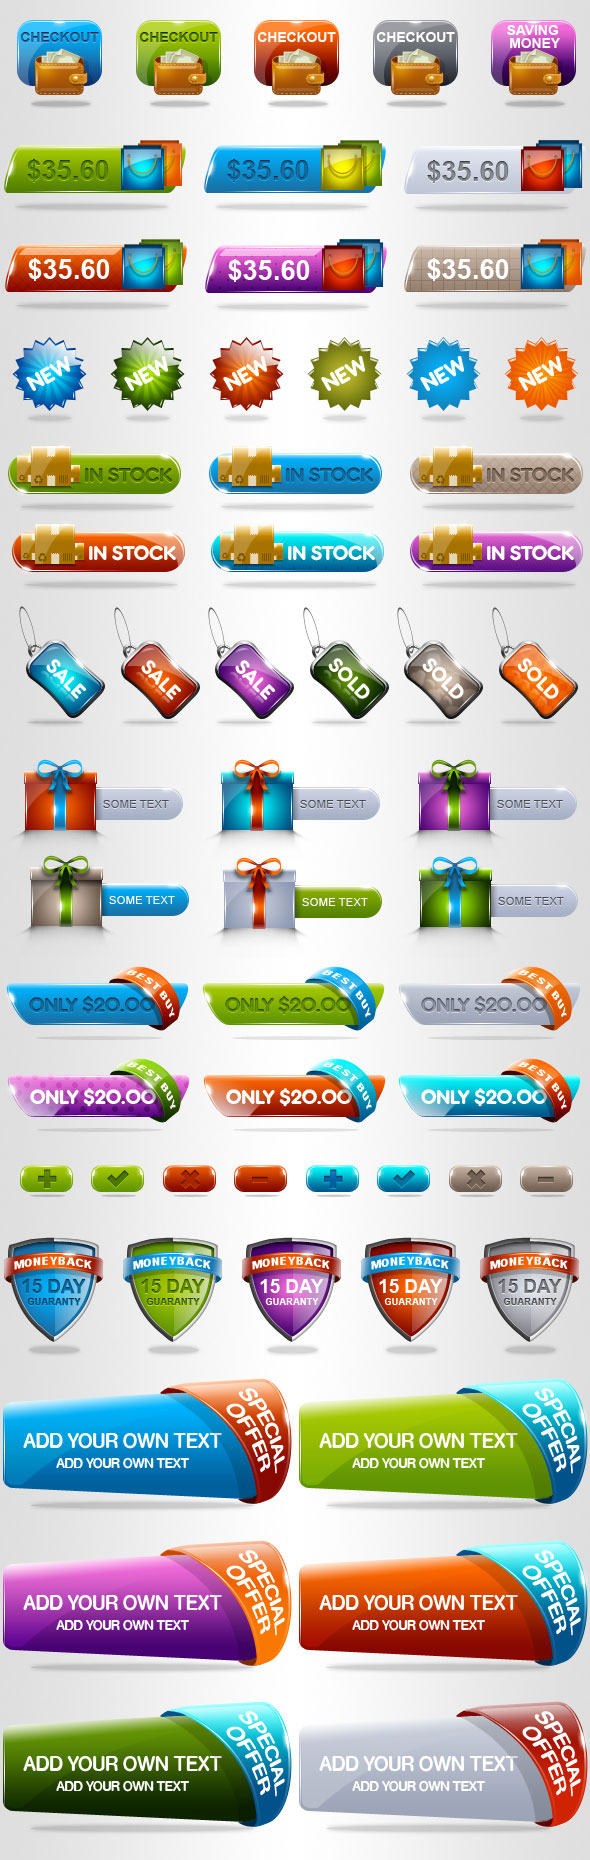 The crystal texture Shopping theme button psd layered material